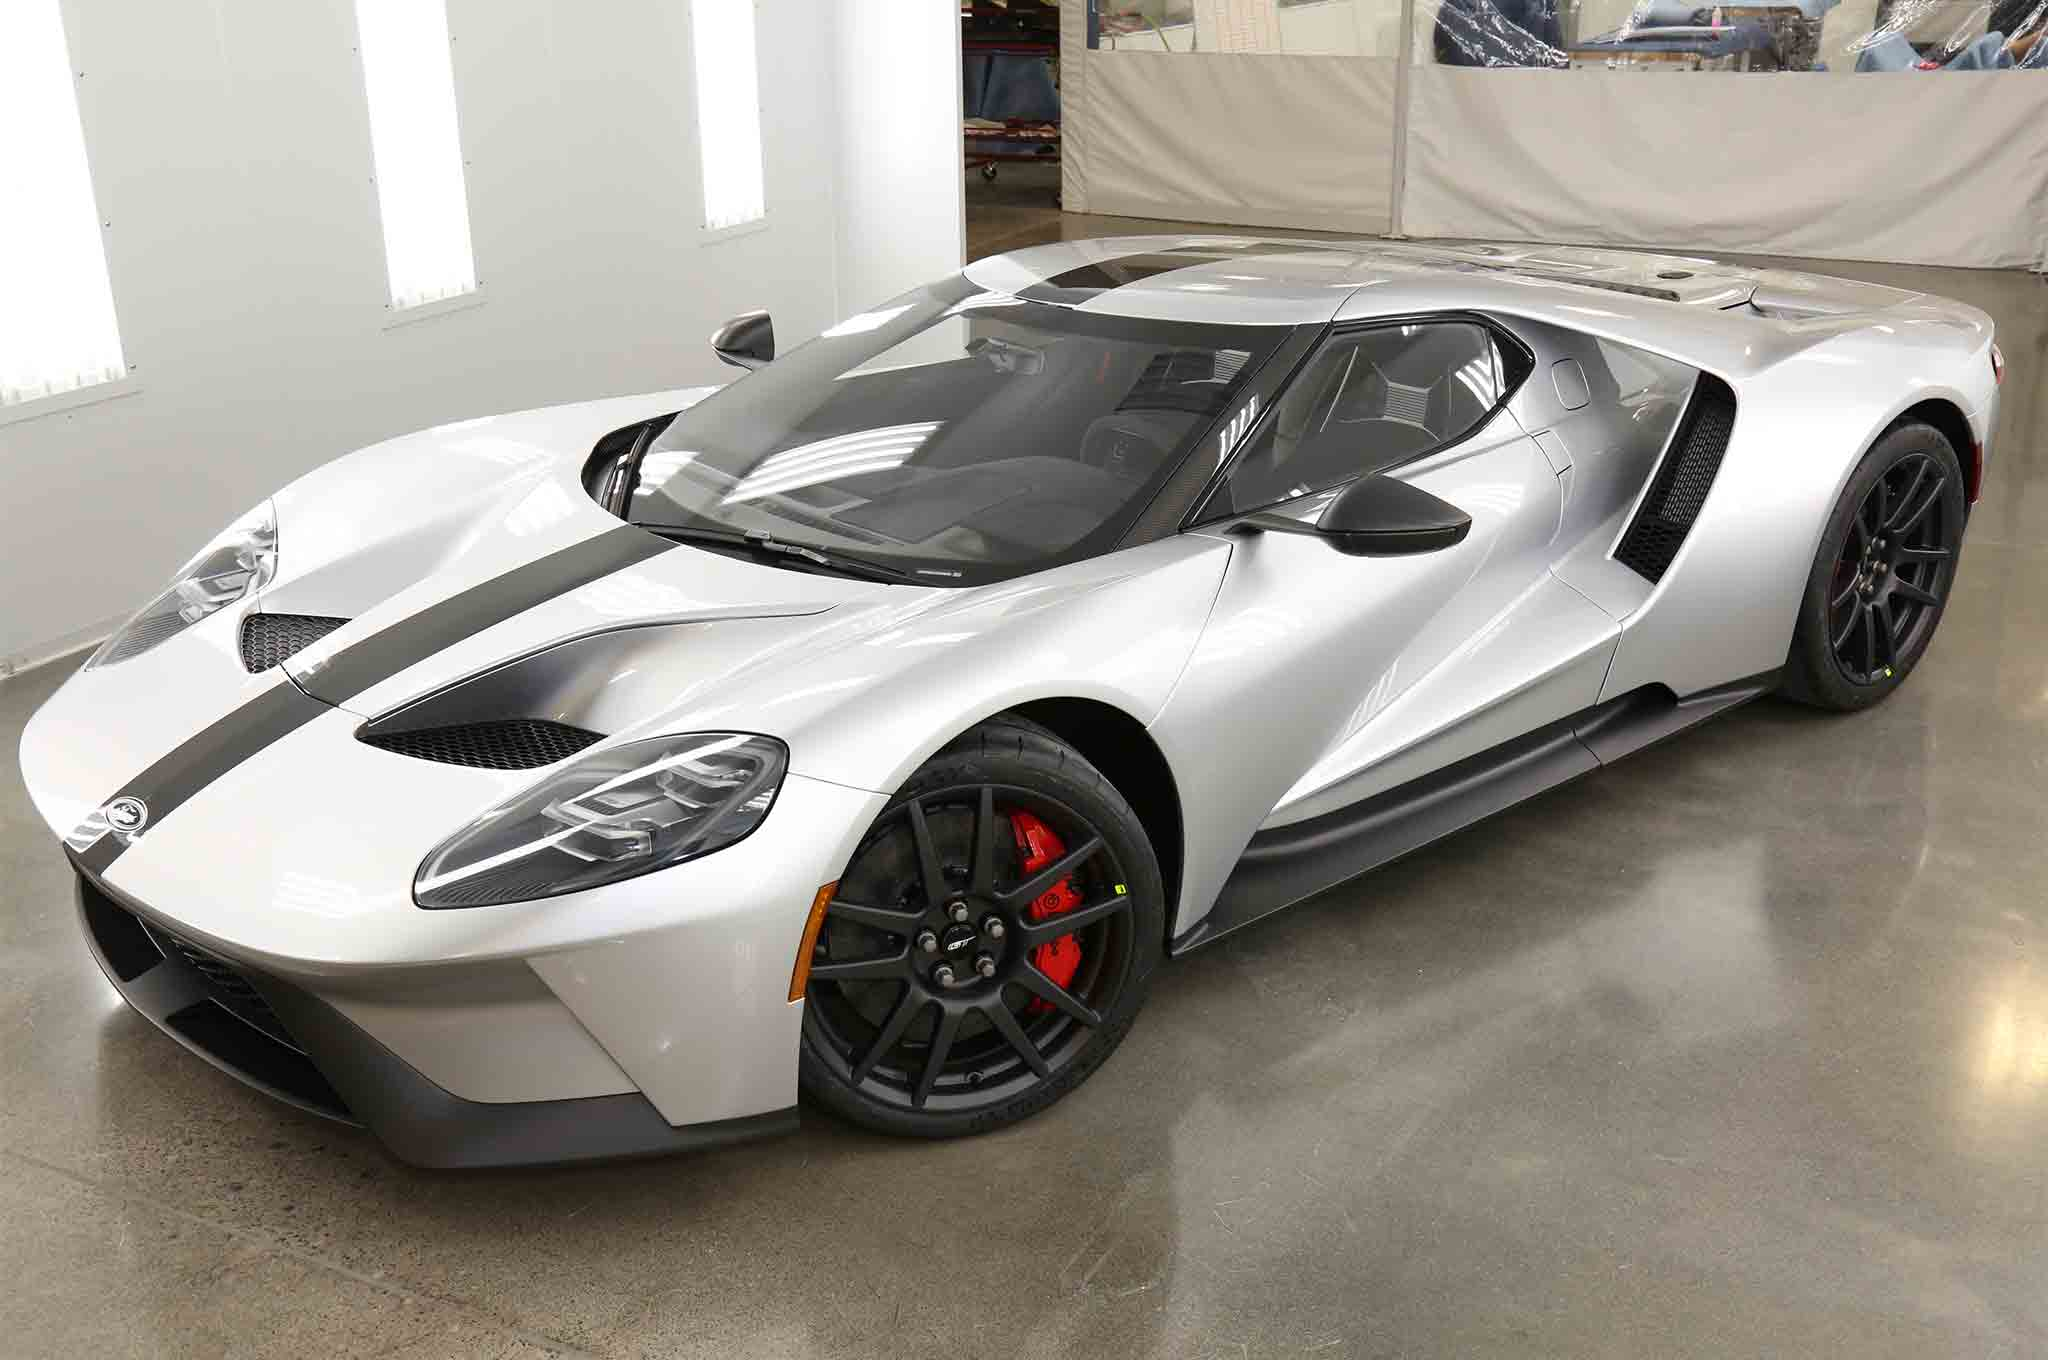 Ford Gt Competition Series Adds Hardcore Touches To The New Supercar